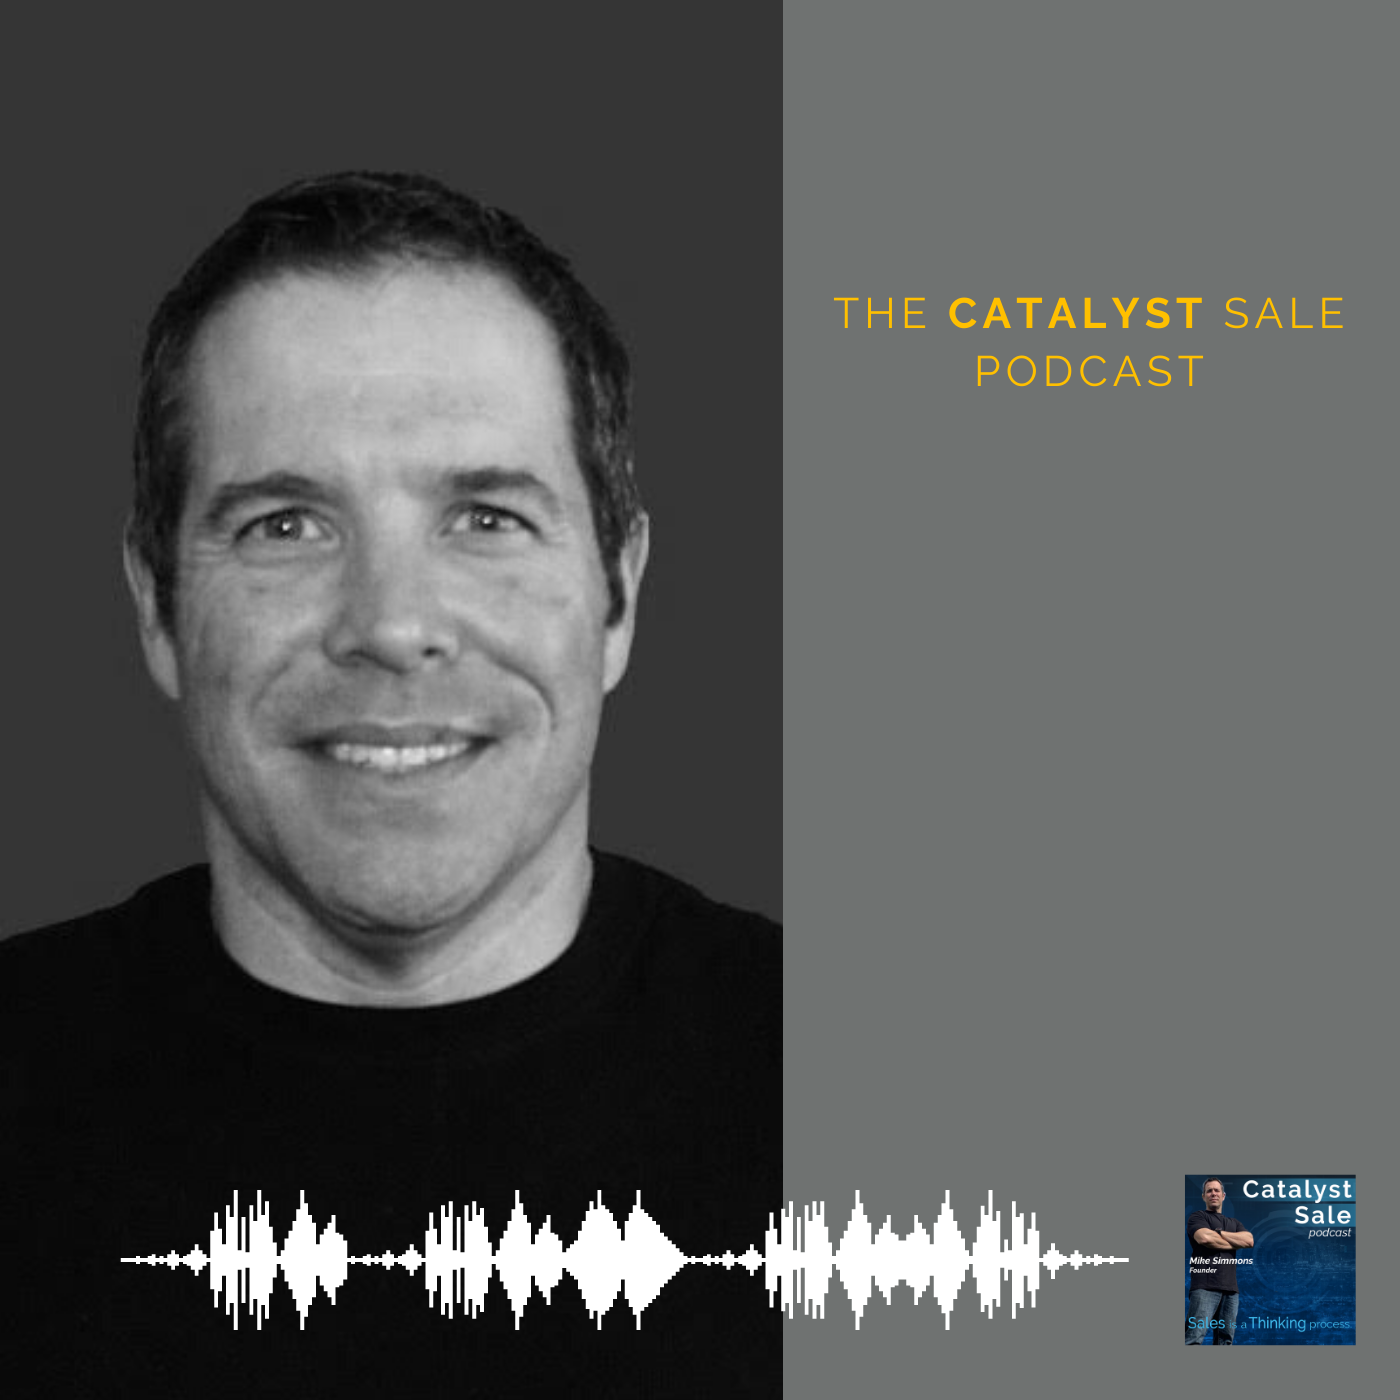 The Catalyst Sale Podcast